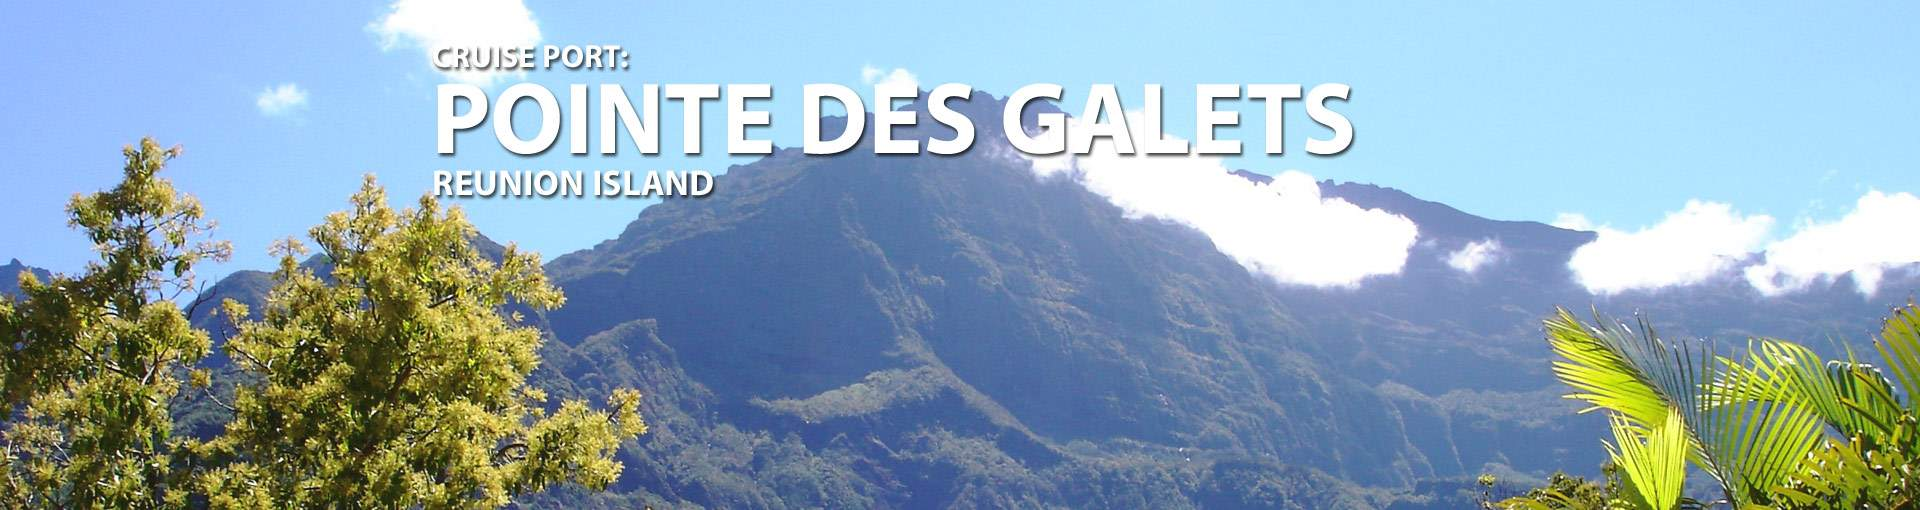 Pointe des Galets, Reunion Island Cruise Port